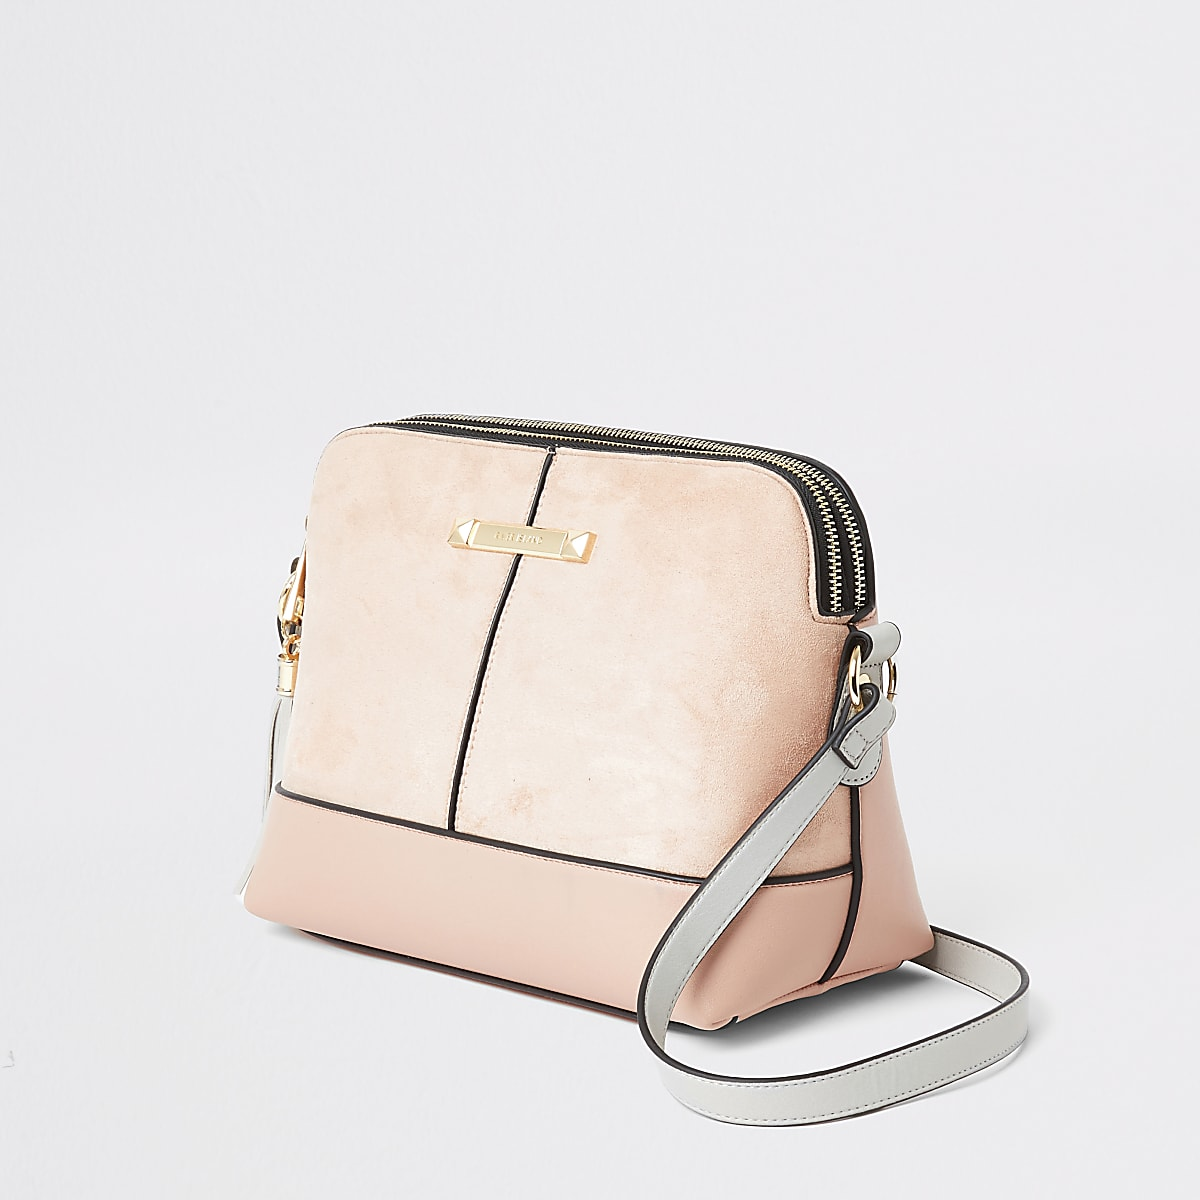 Light pink cross body bag